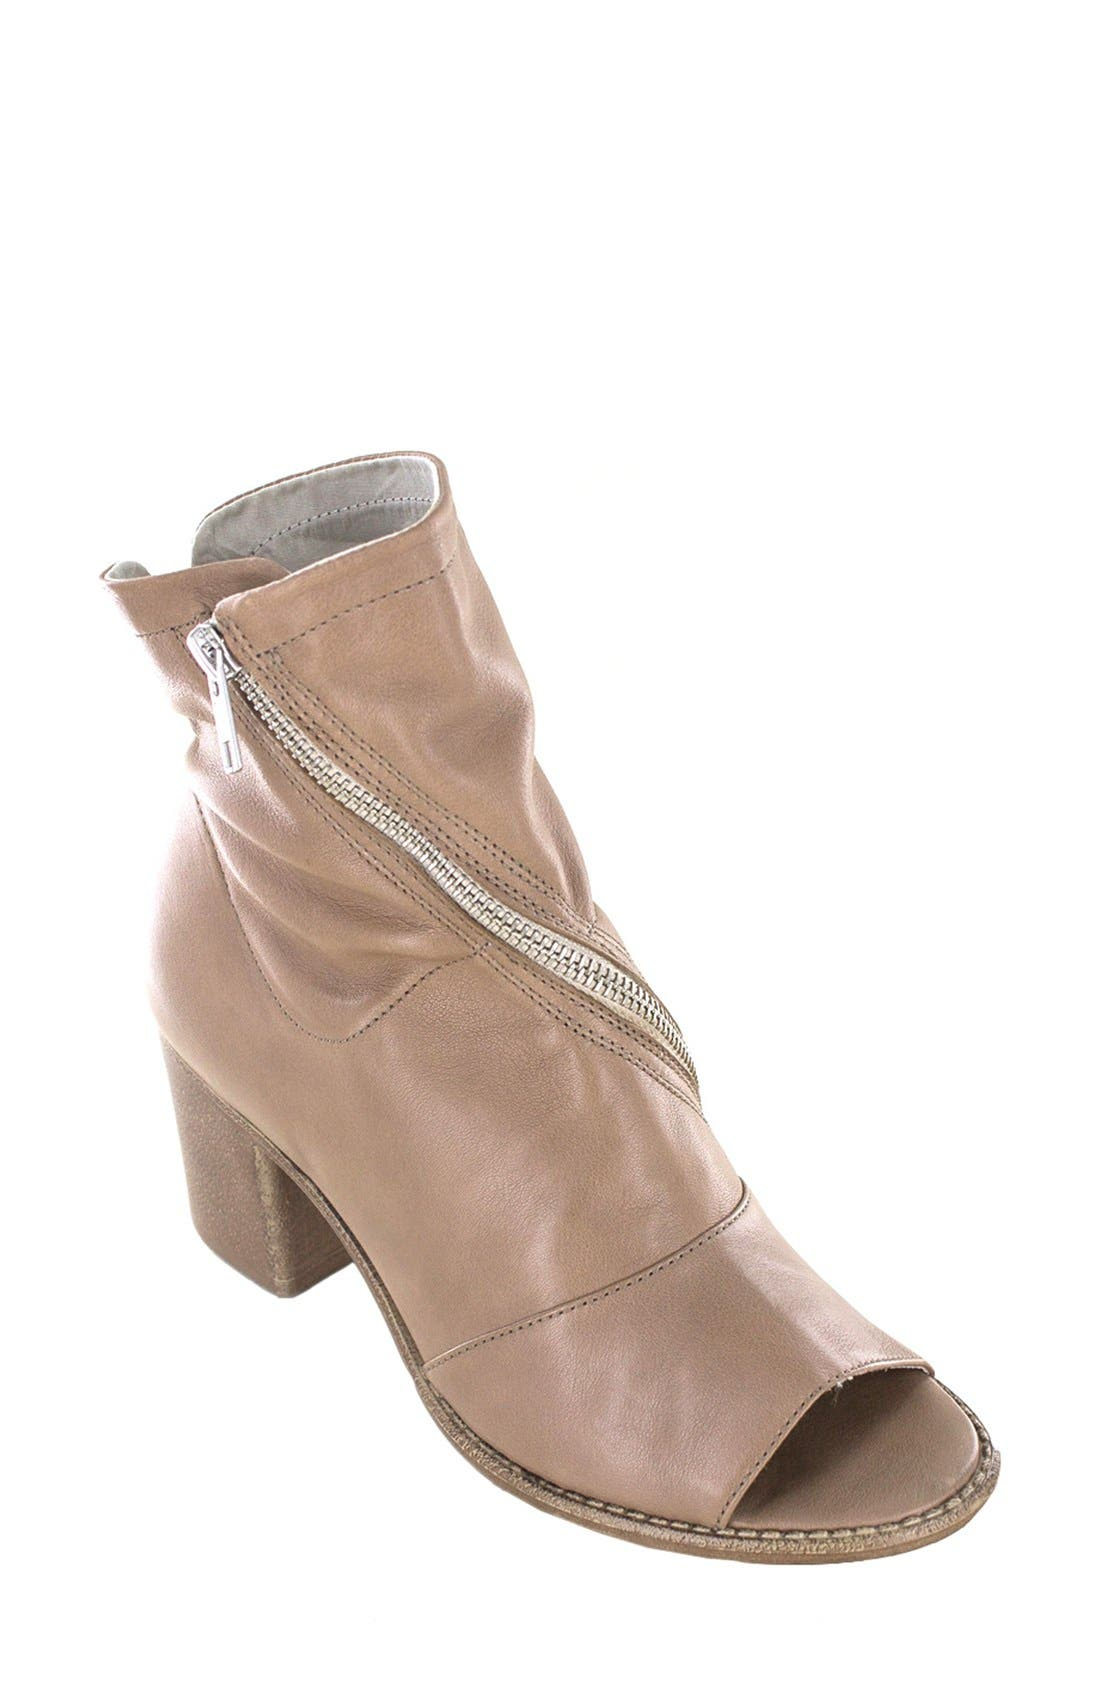 'Fantasia' Open Toe Bootie,                         Main,                         color, 252